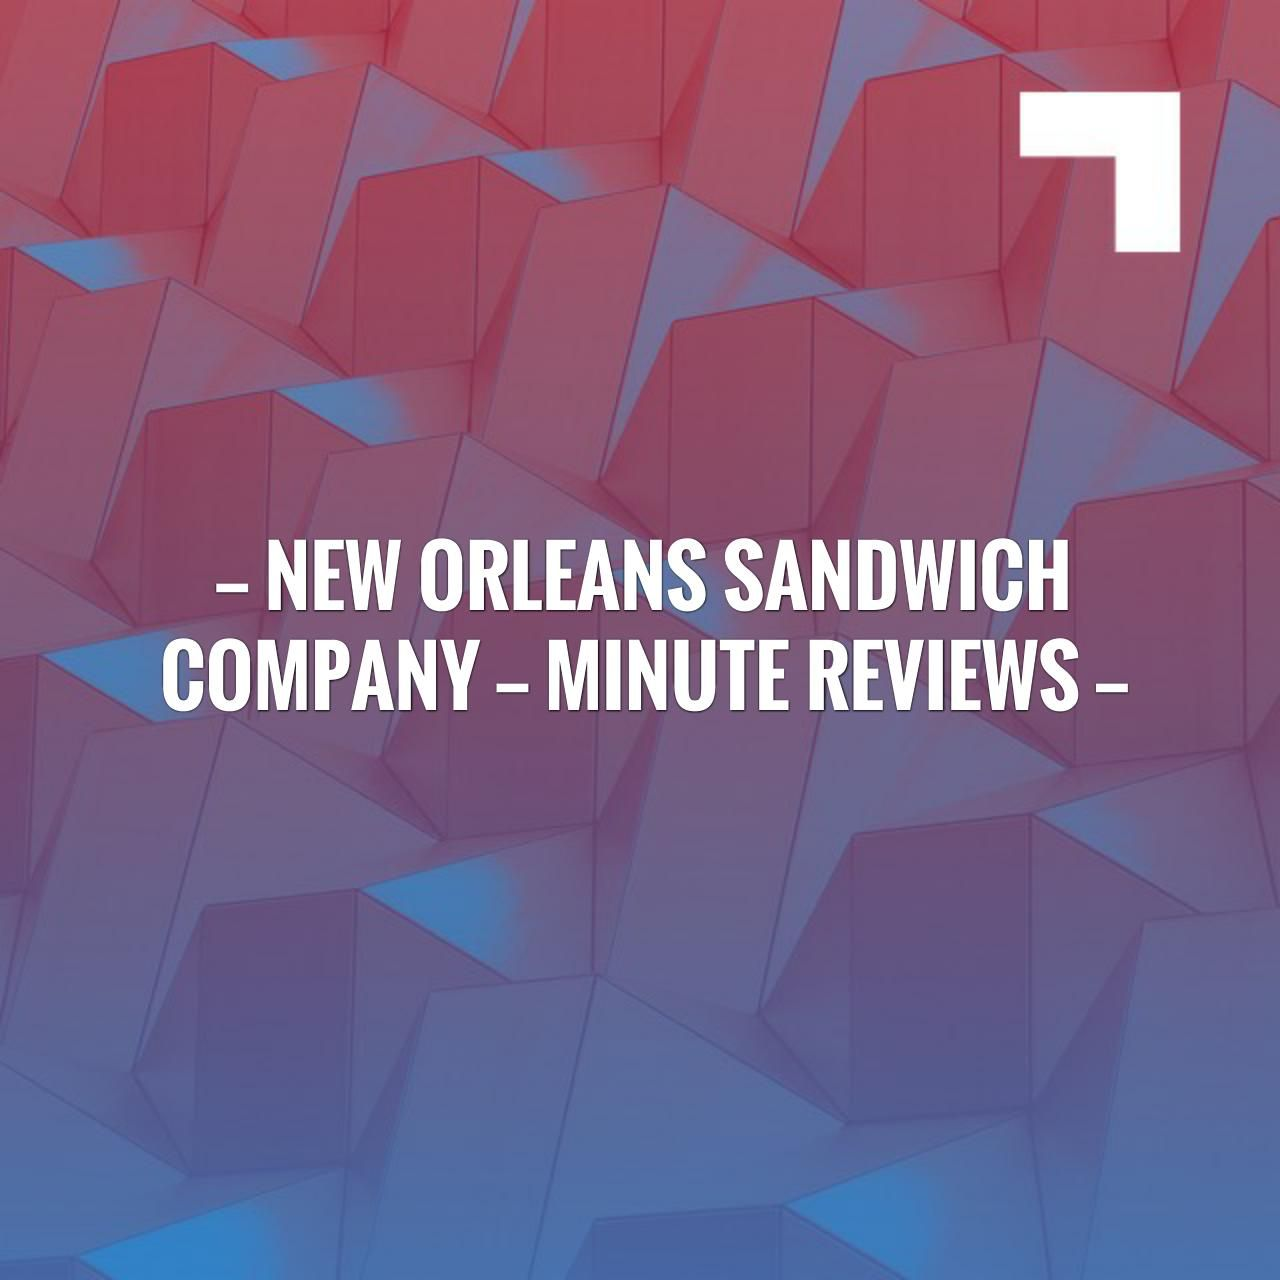 New Orleans Sandwich Company Minute Reviews Love And Light